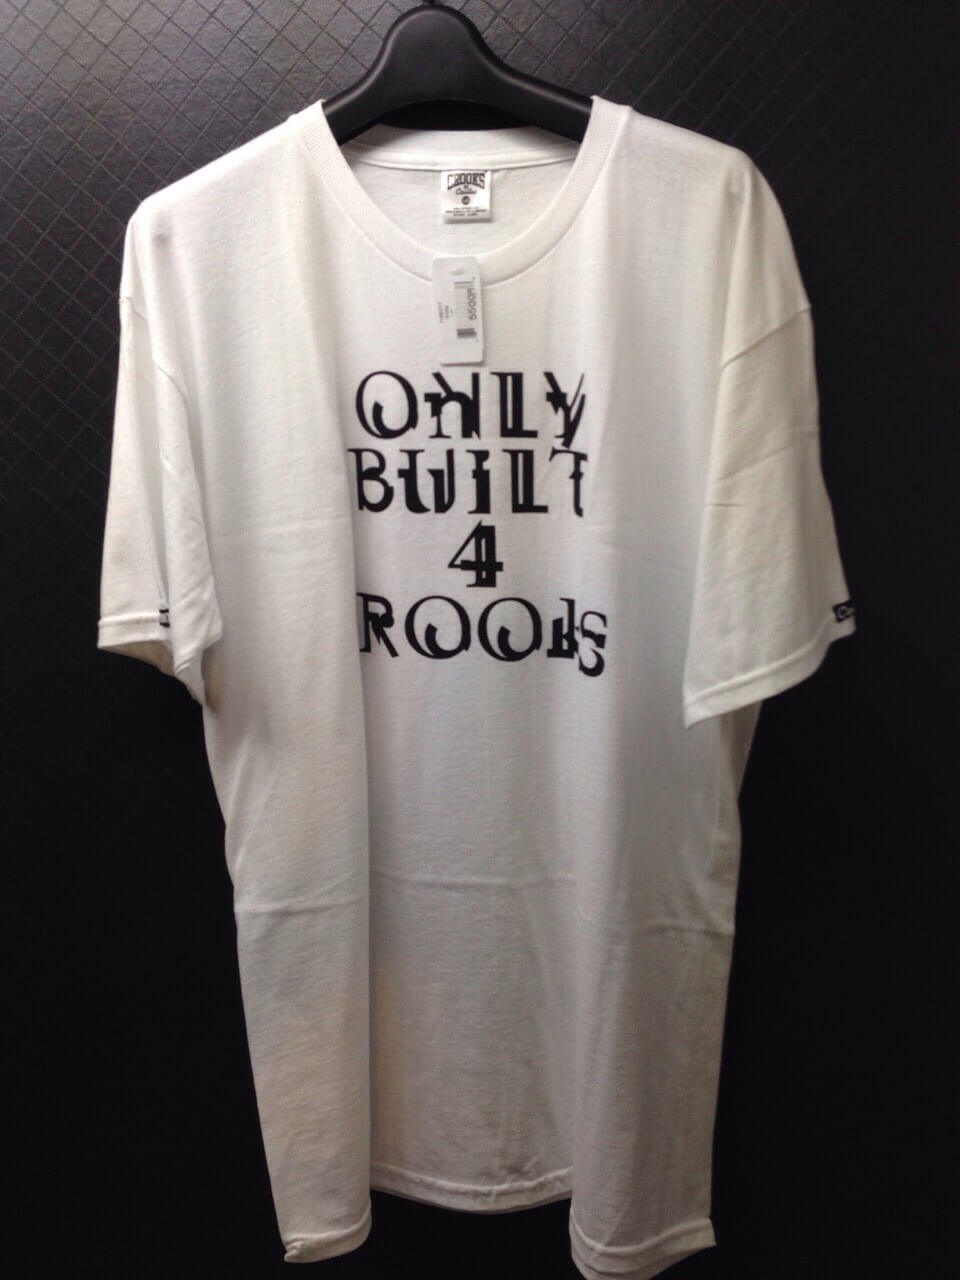 crooks_t-shirt-white01